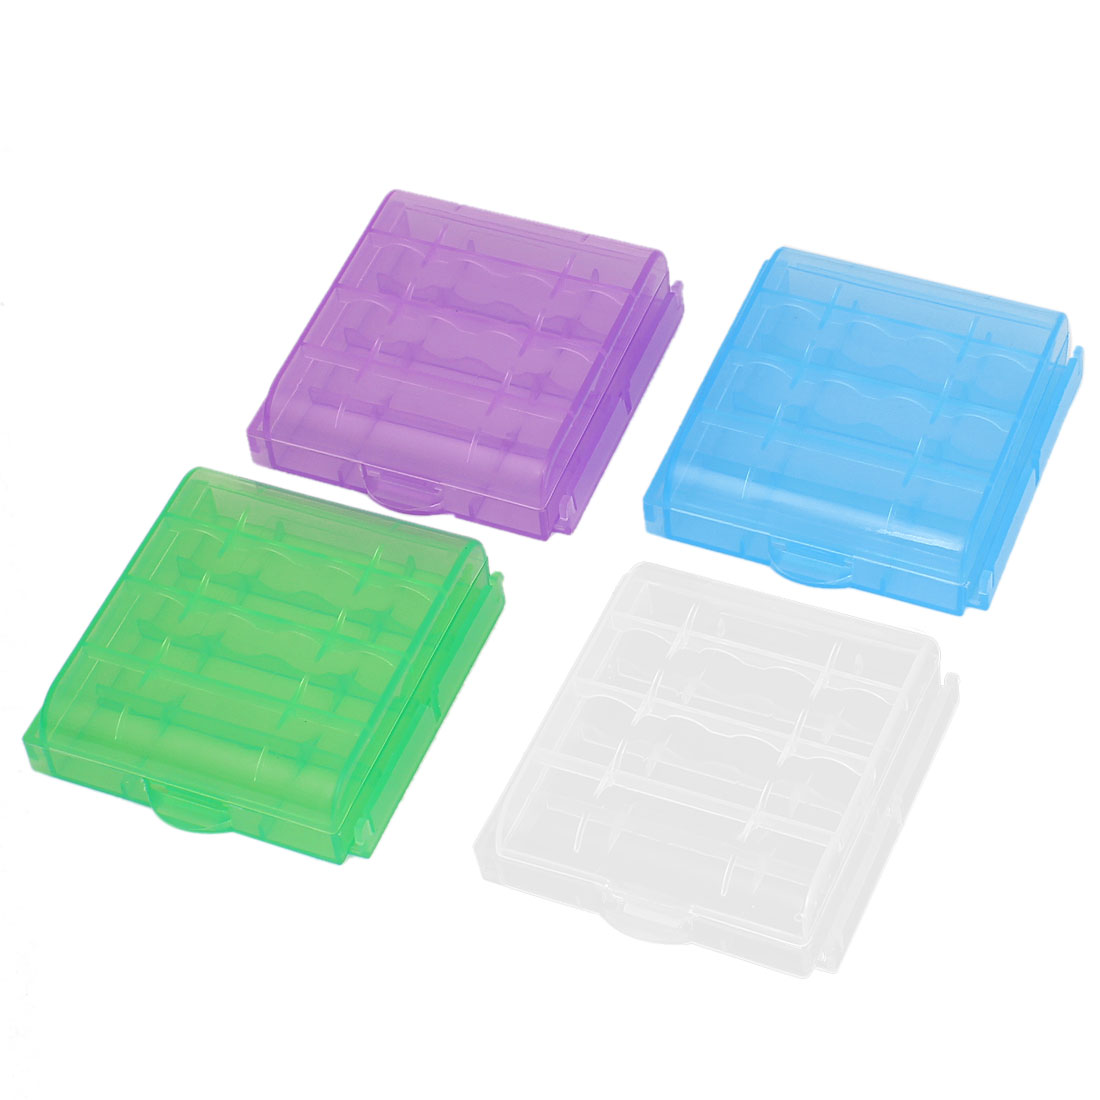 Multicolor Storage Box Case Container 4Pcs for 4 x AA Batteries